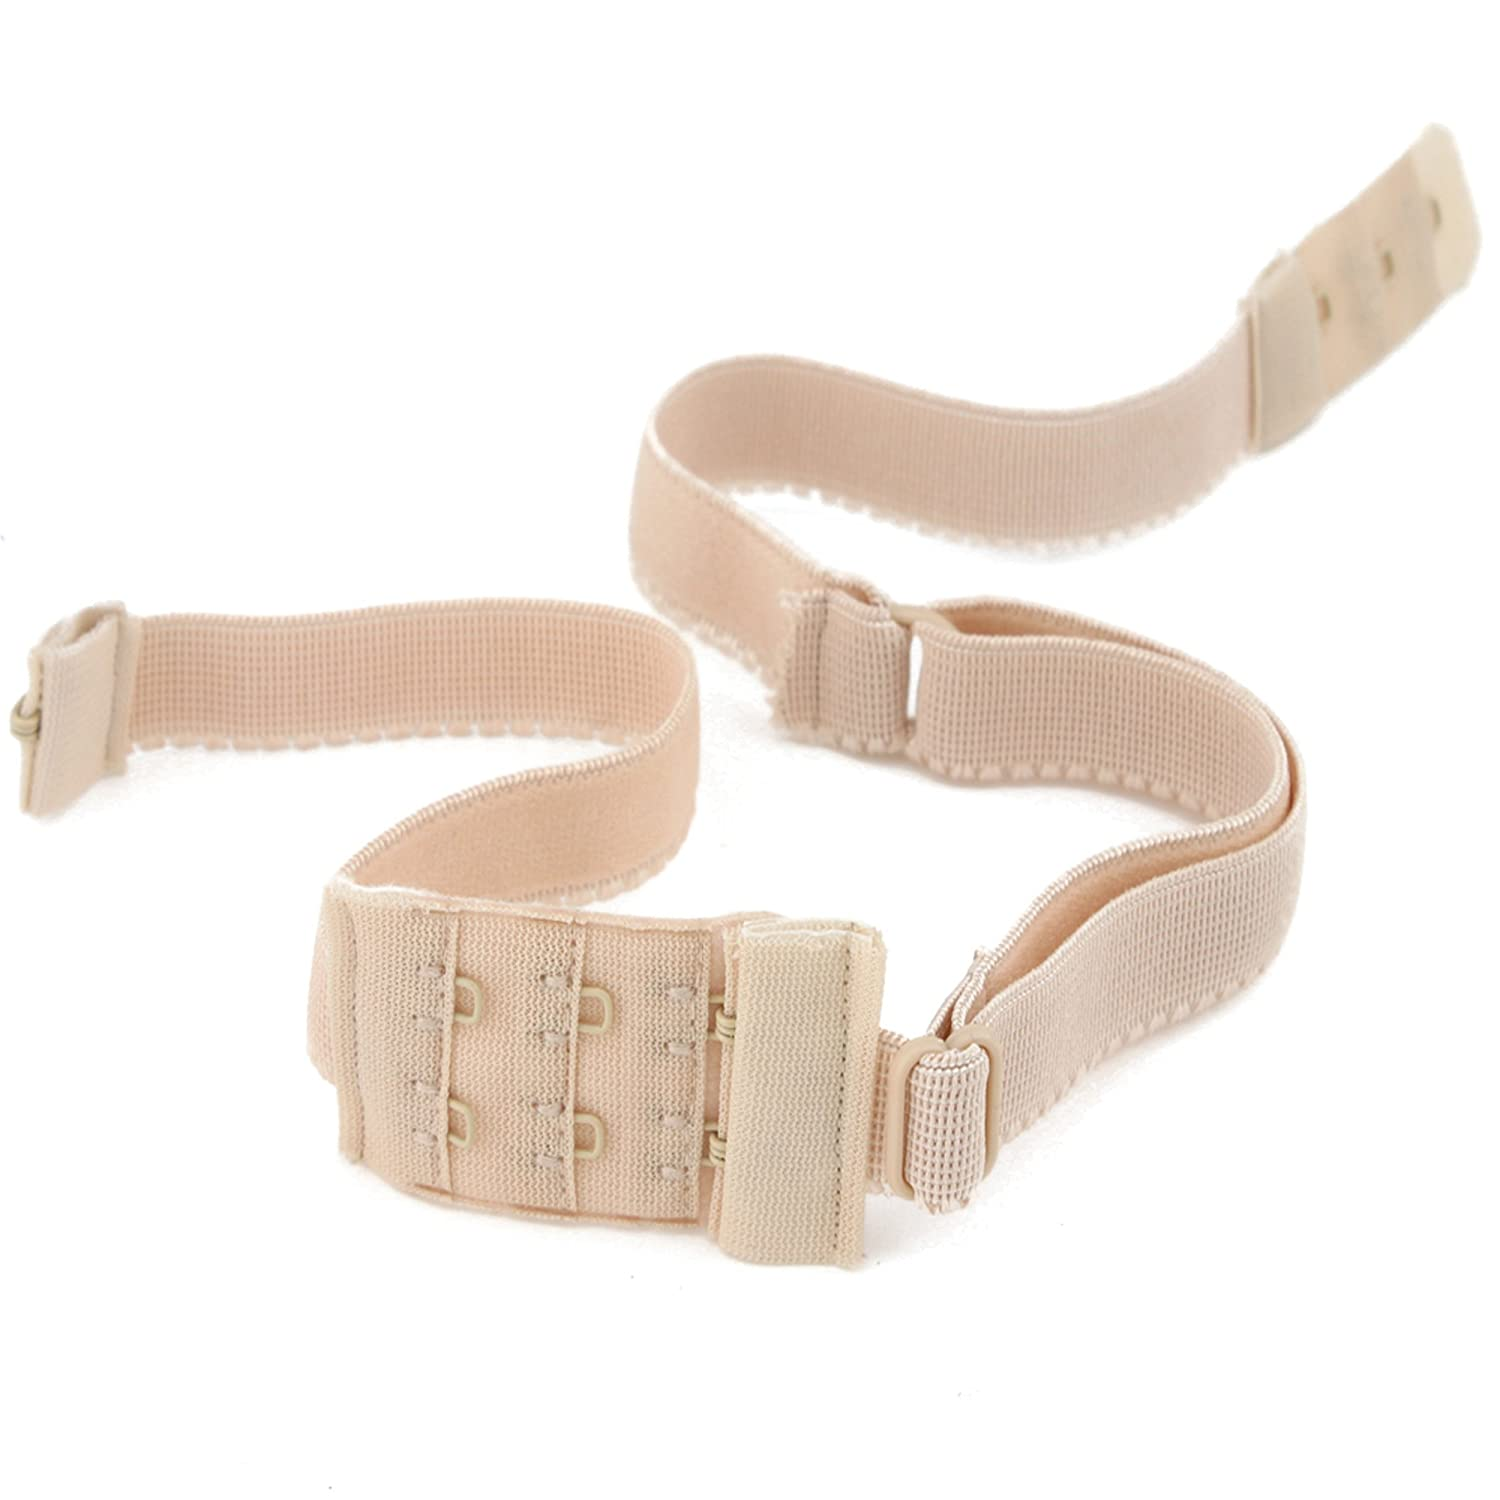 BACKLESS BRA STRAP LOW BACK STRAP CONVERTER - Chose your colour WHITE - BLACK or NUDE or Buy All 3 & Save £2.00 (NUDE)